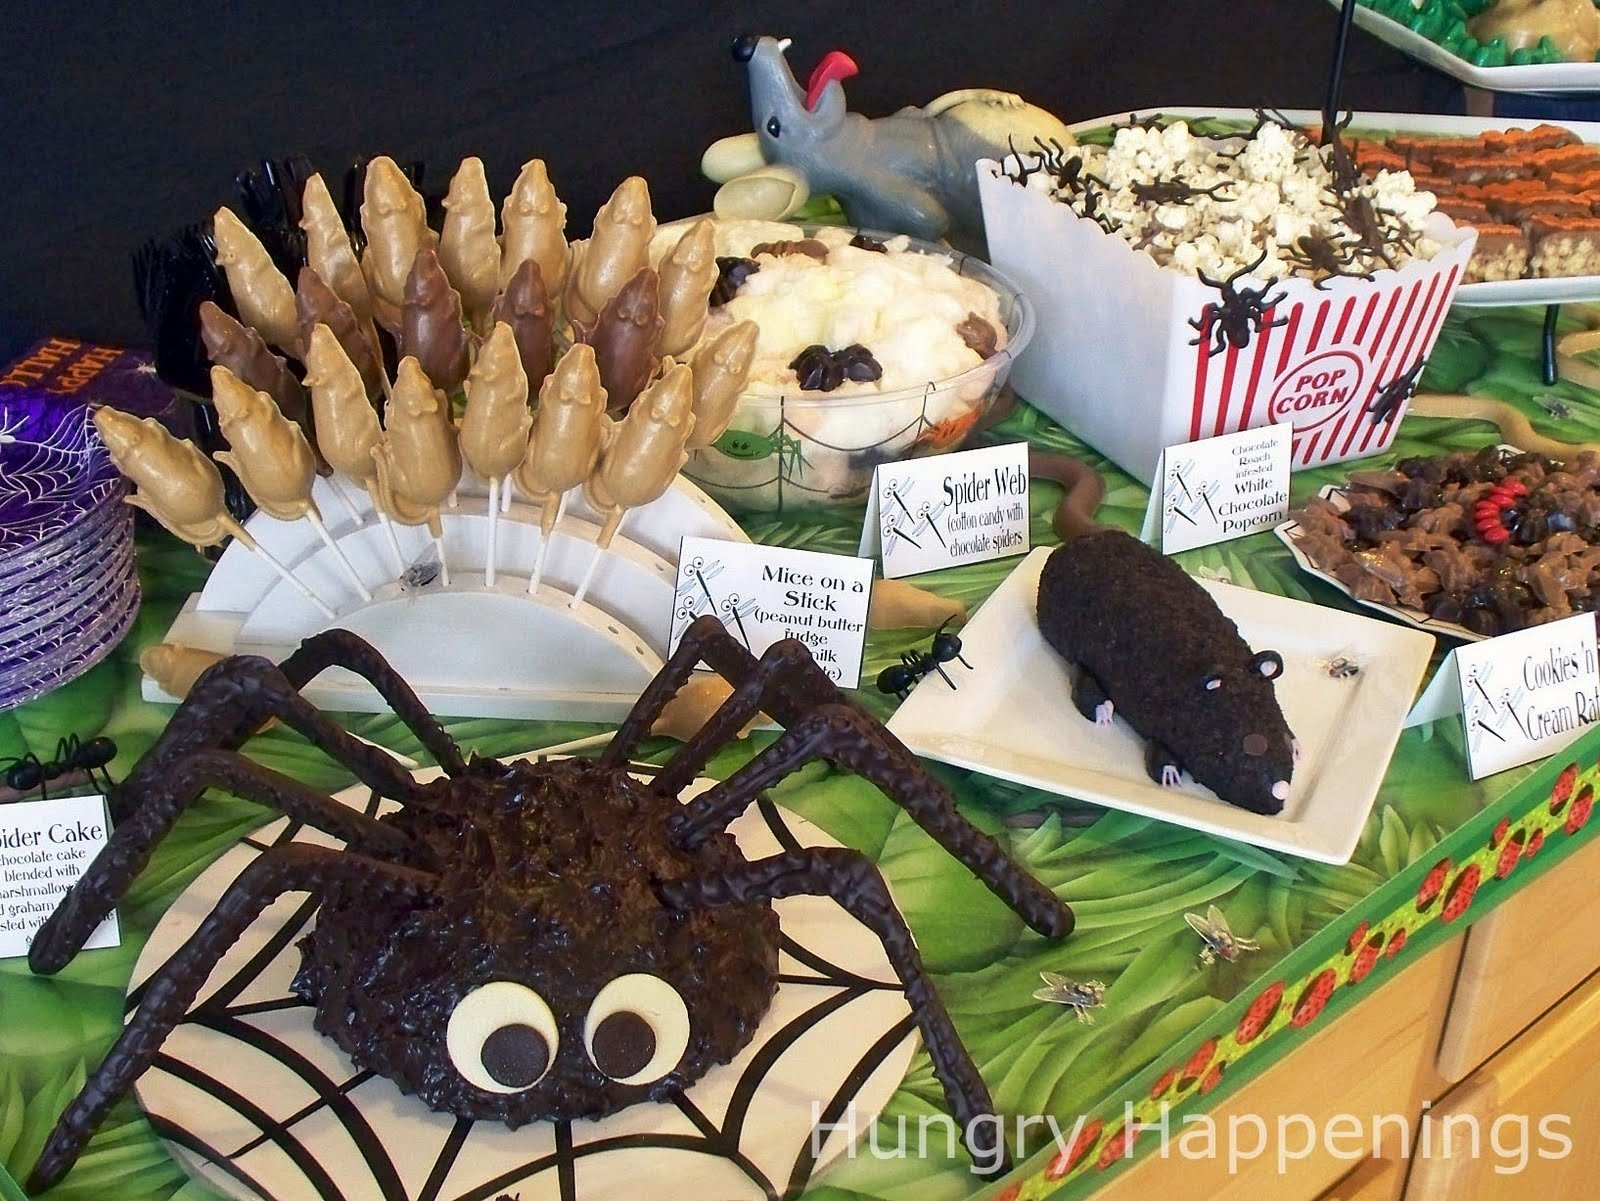 10 Great Halloween Food Ideas For Party carnival of the creepy crawlers halloween party theme 2